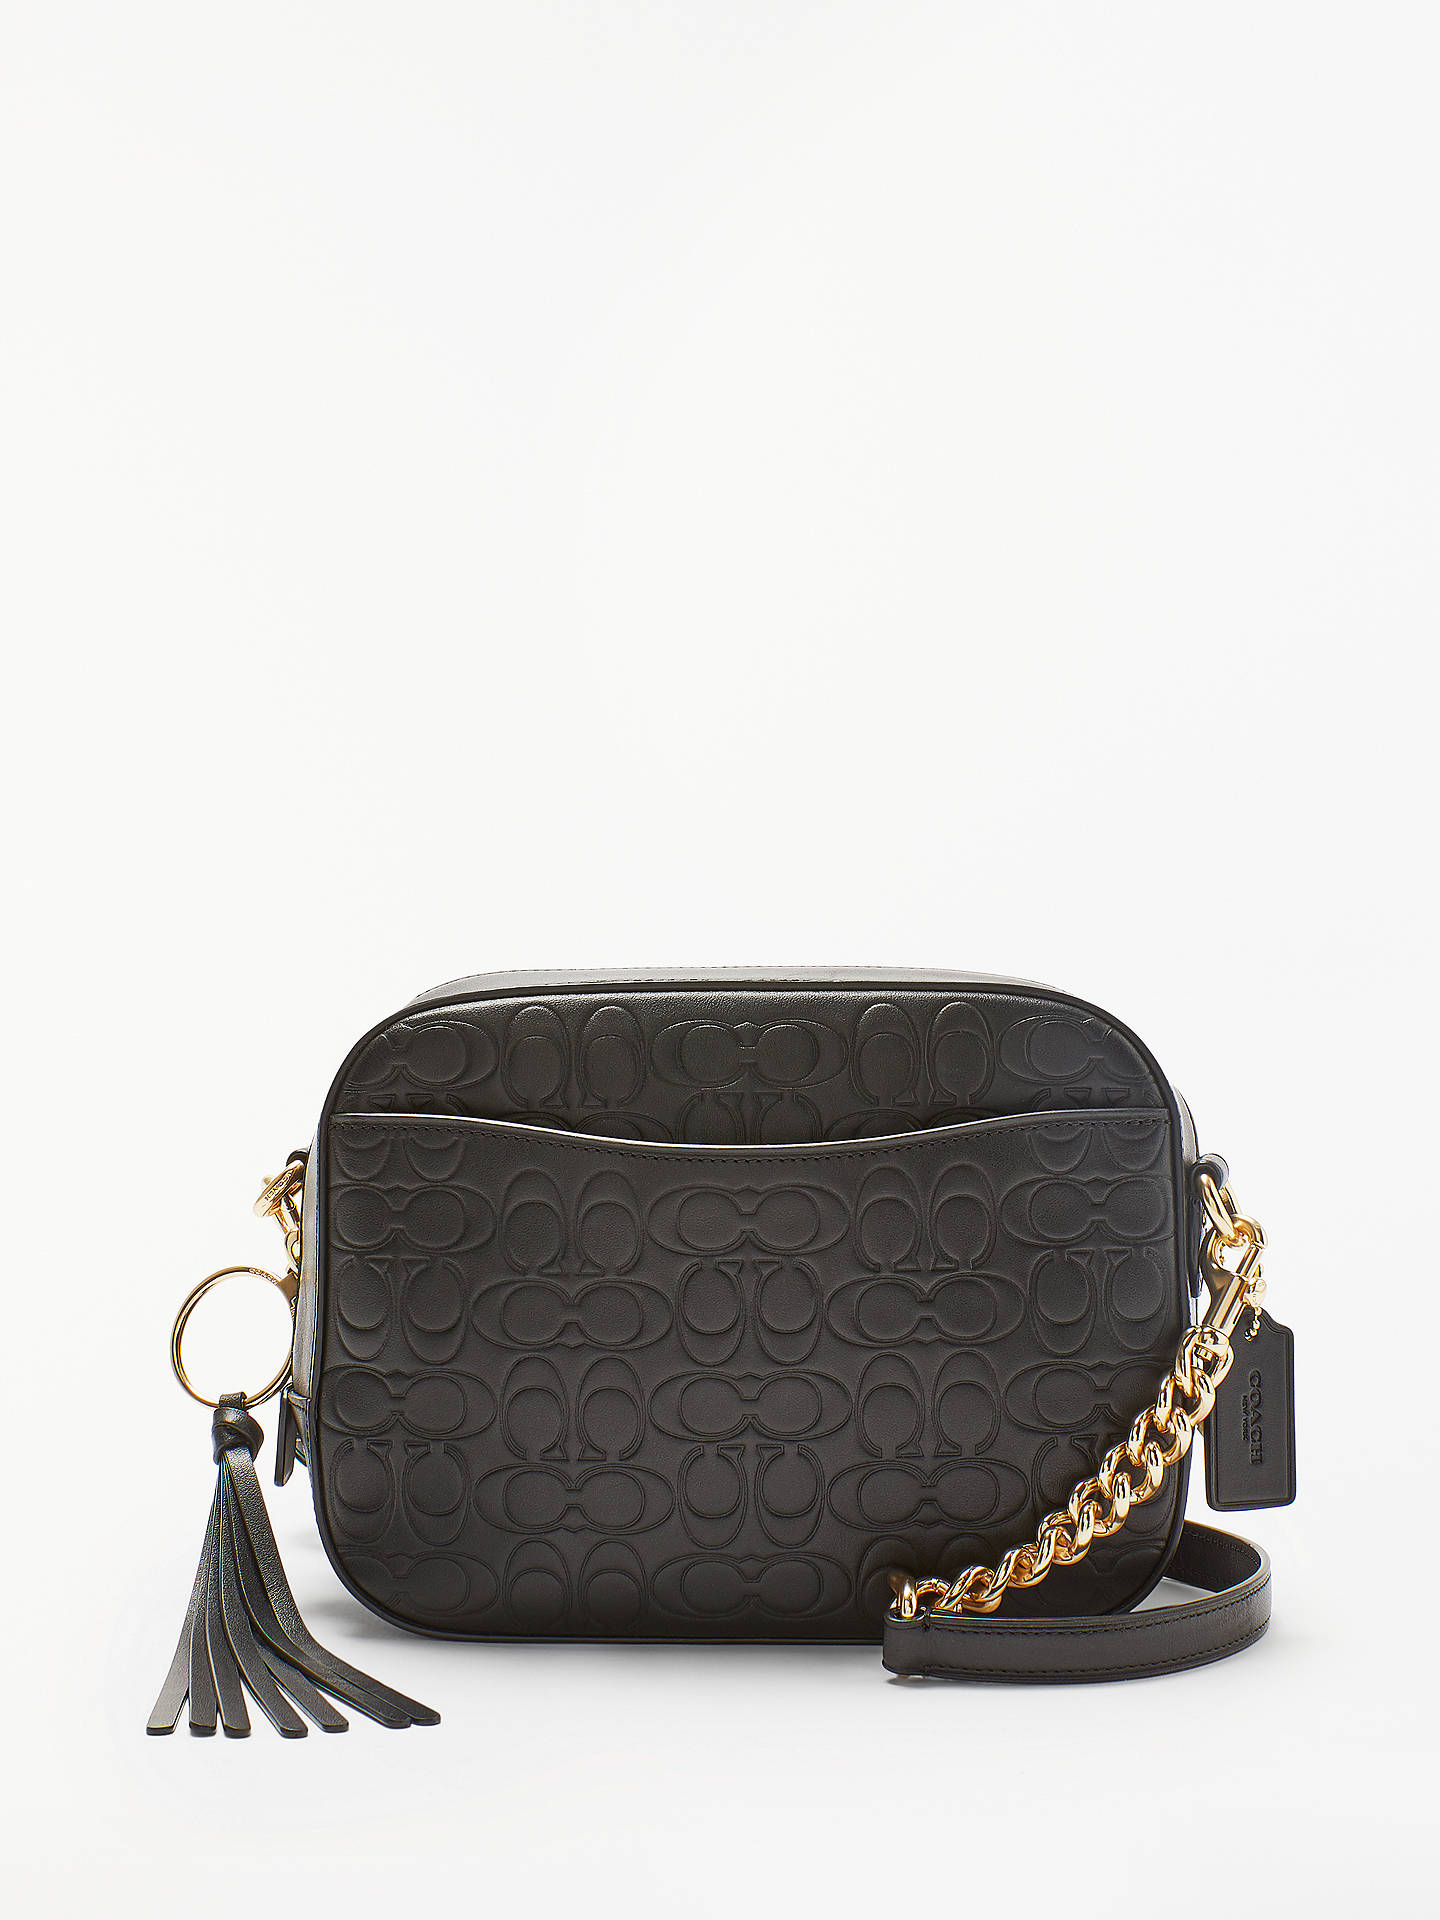 6fa0947a907 Buy Coach Signature Embossed Leather Camera Bag, Black Online at  johnlewis.com ...